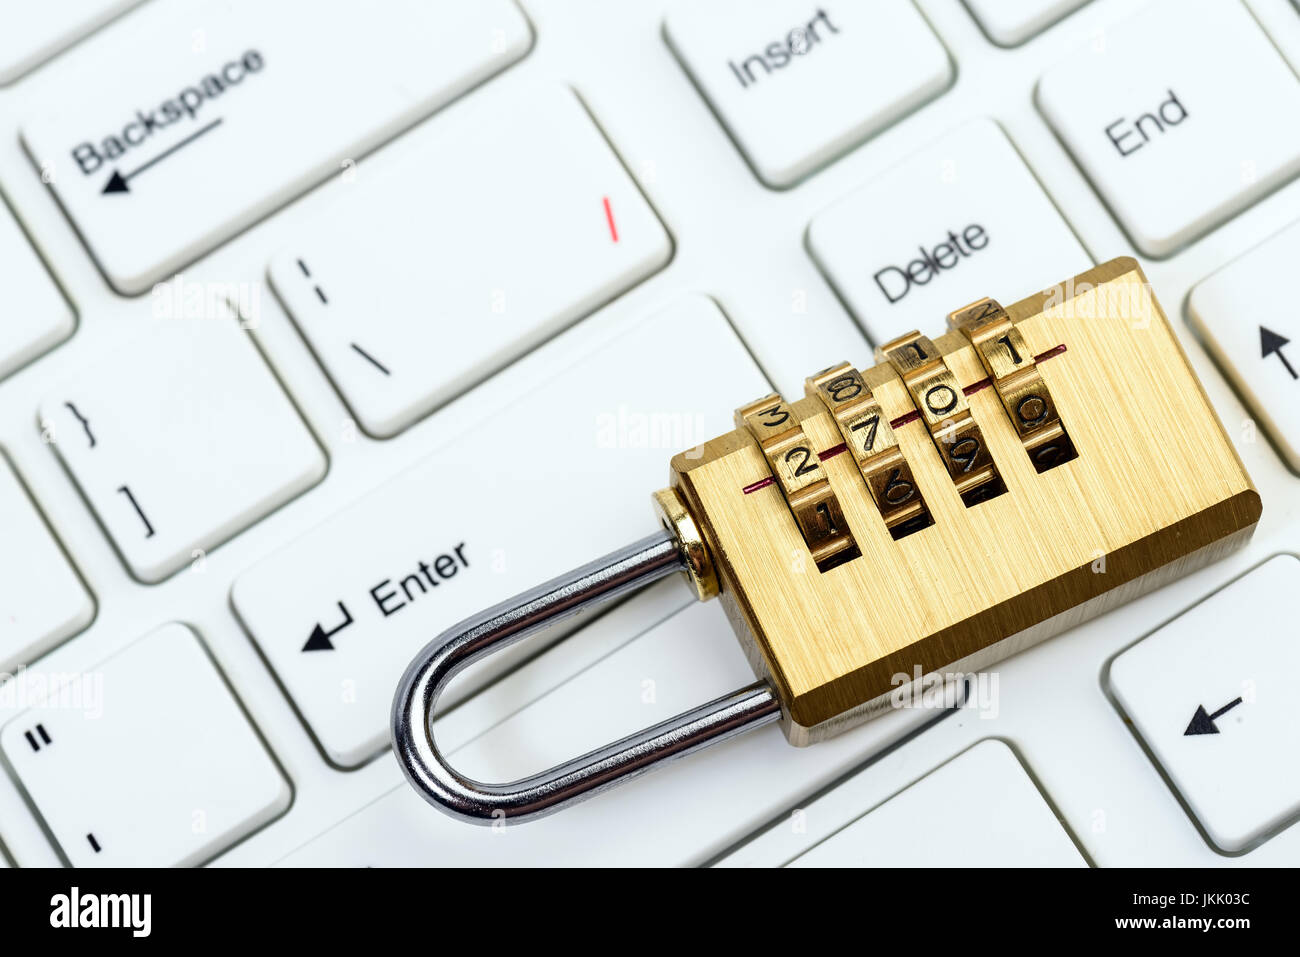 computer and online security with keyboard and padlock - Stock Image